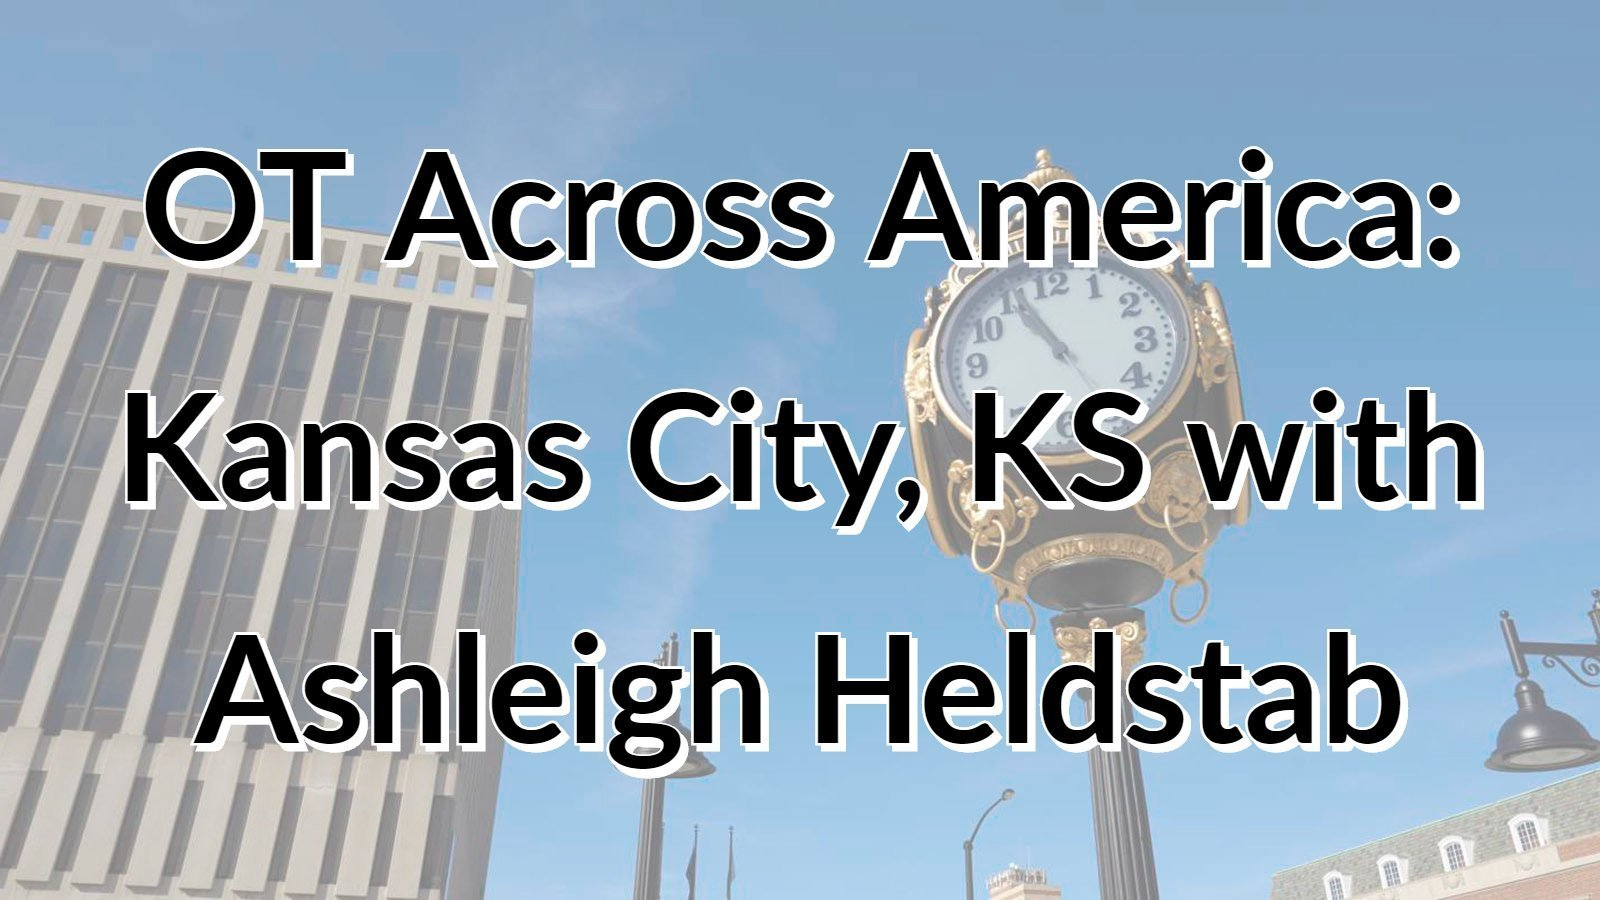 ot-across-america-kansas-city-main